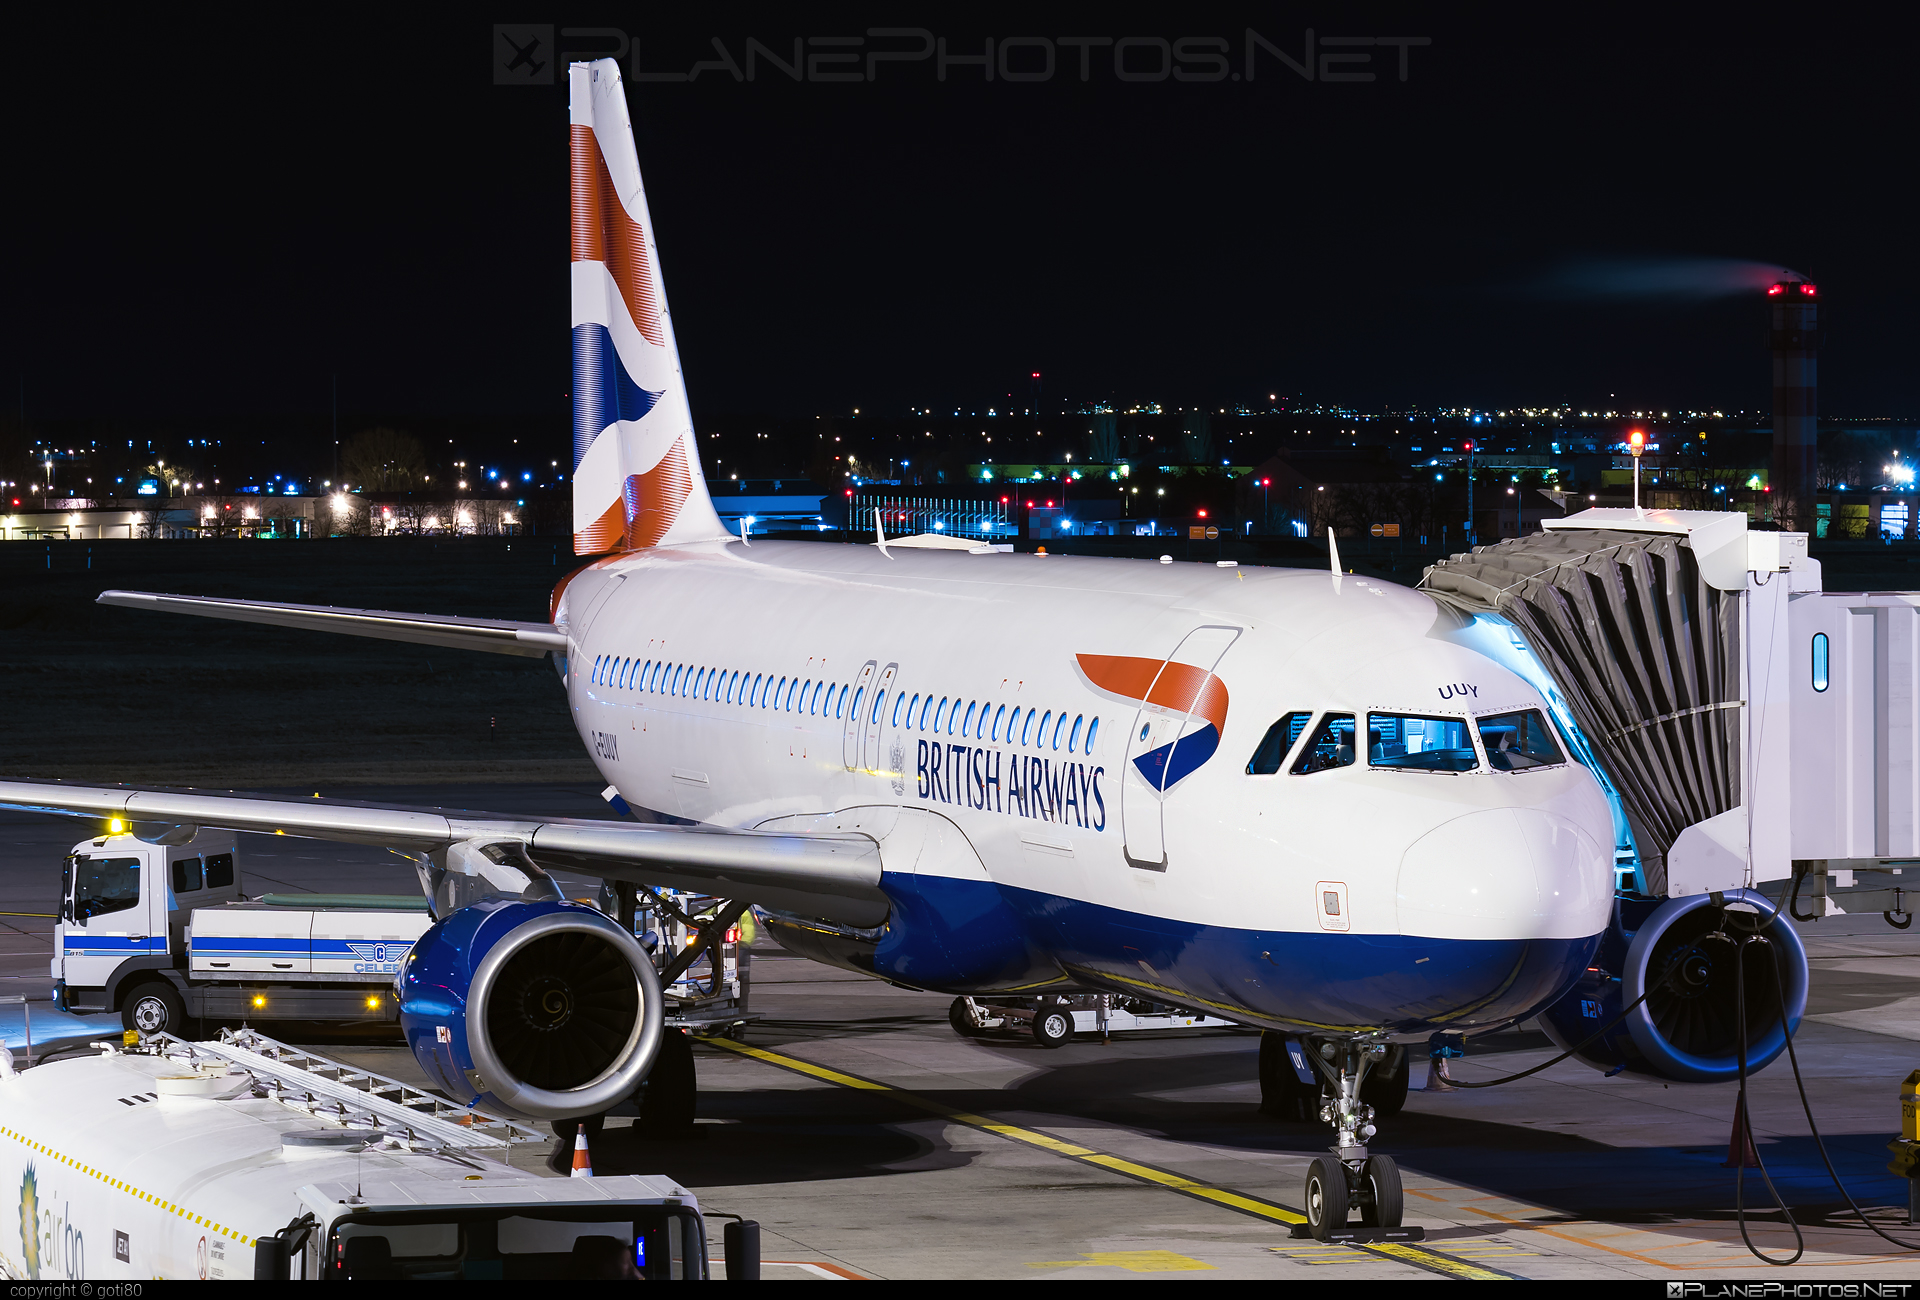 British Airways Airbus A320-232 - G-EUUY #a320 #a320family #airbus #airbus320 #britishairways